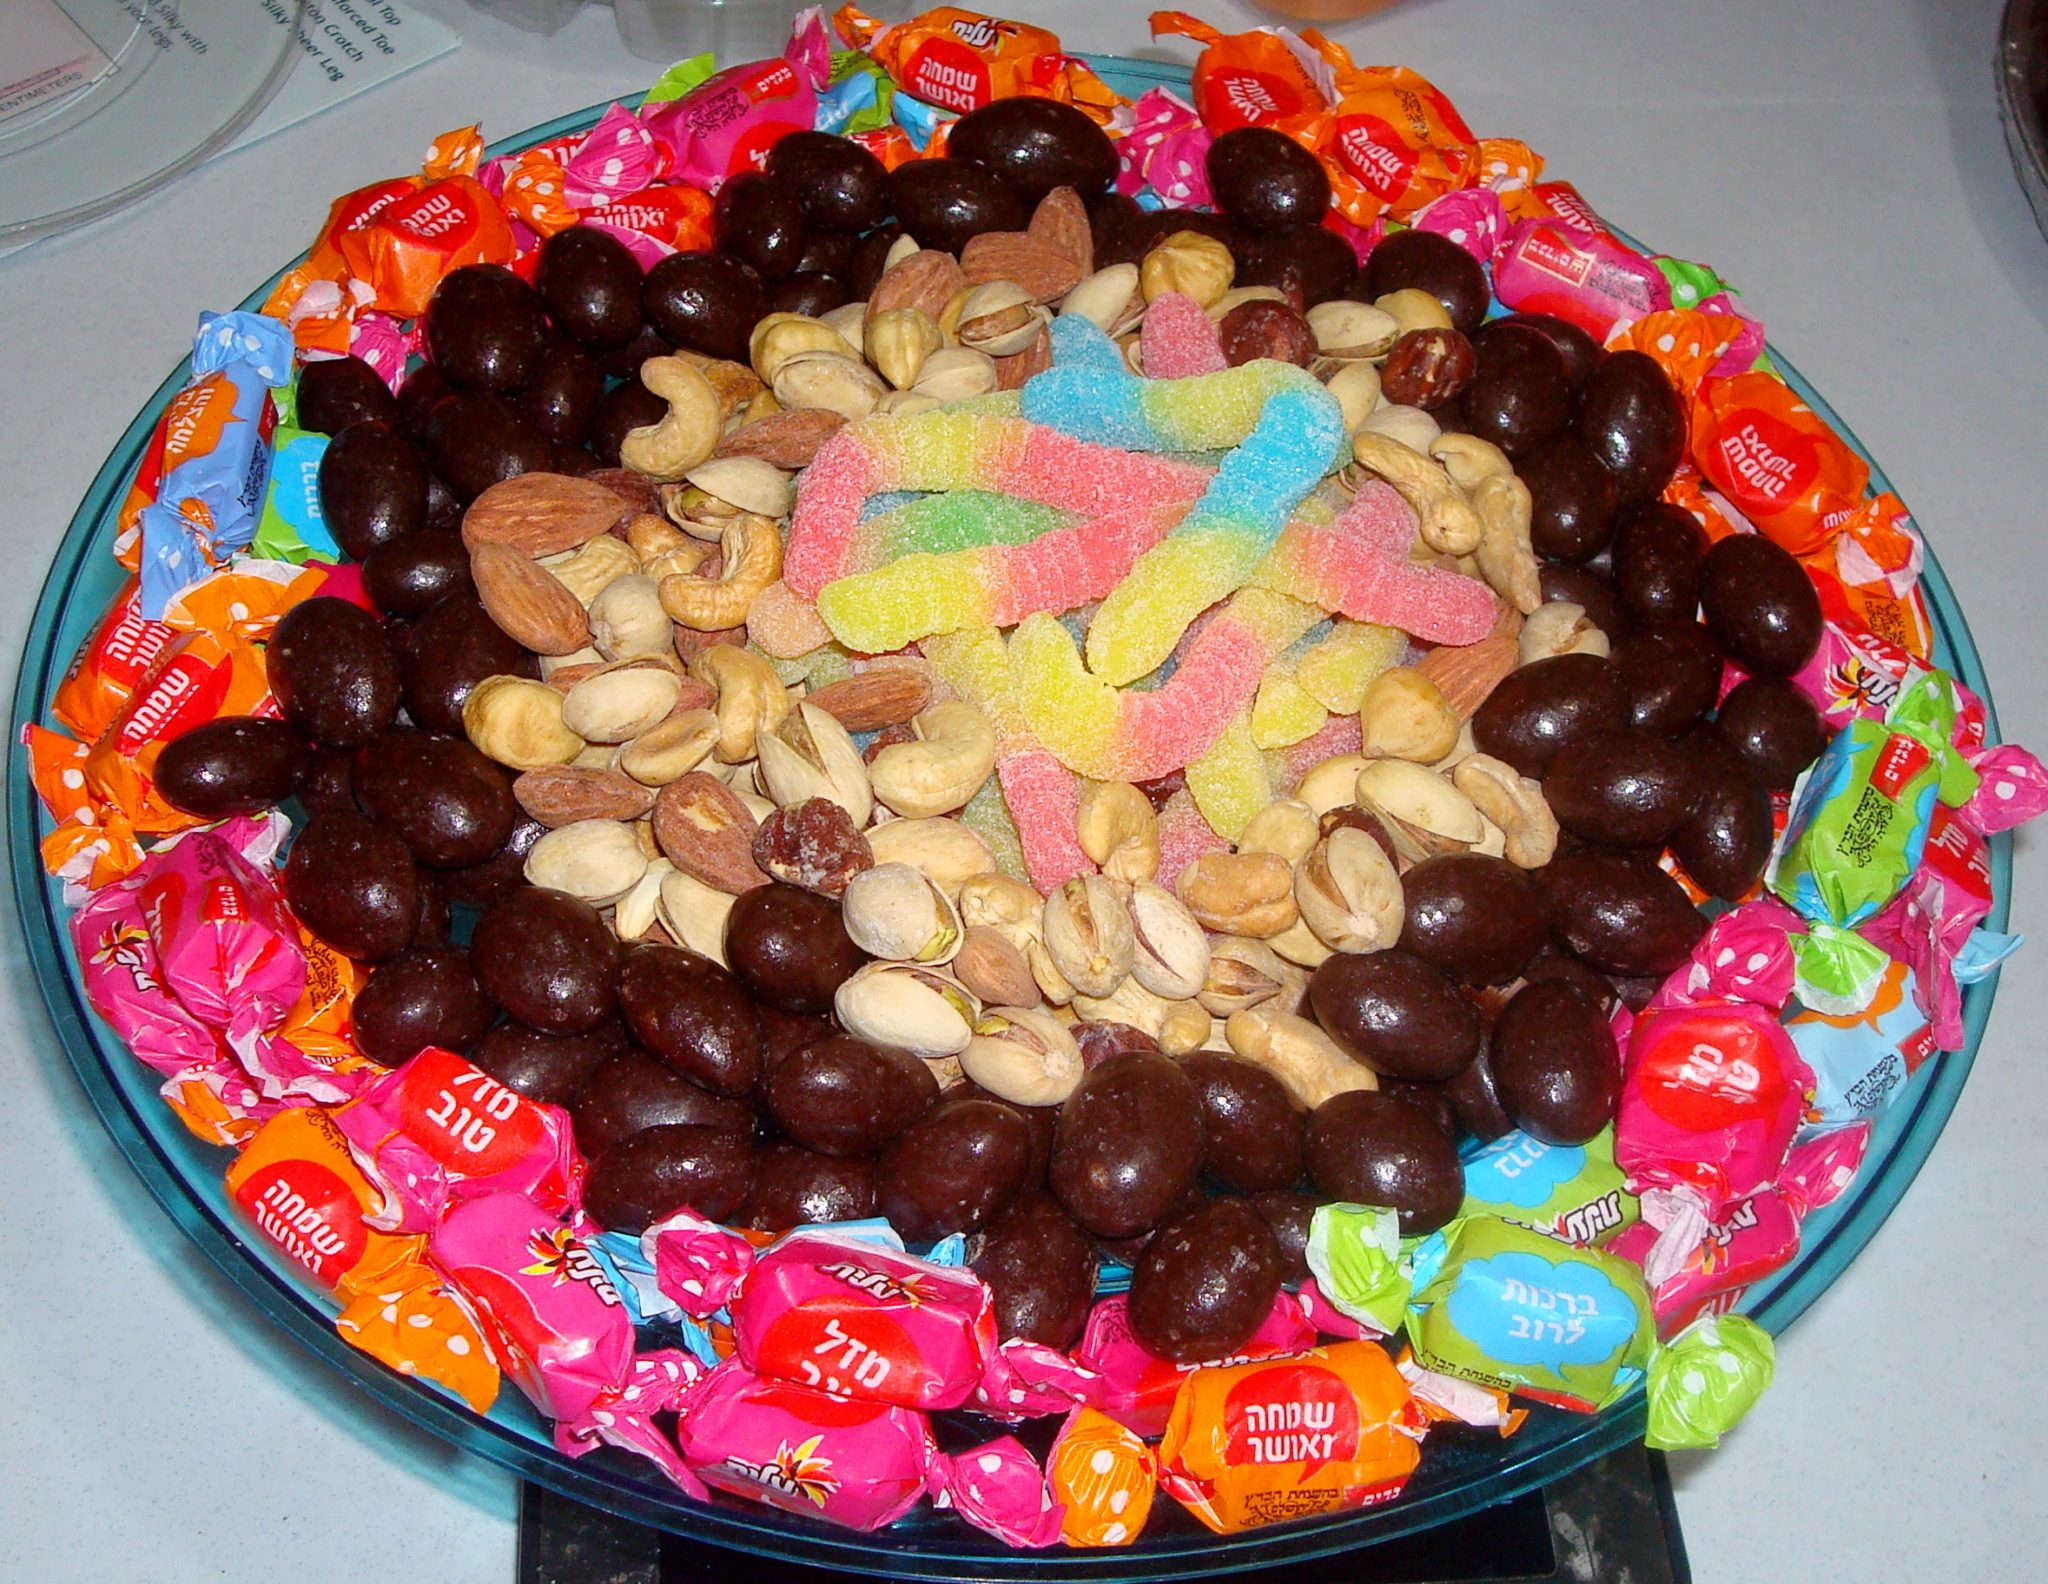 Chocolate, candy, nuts